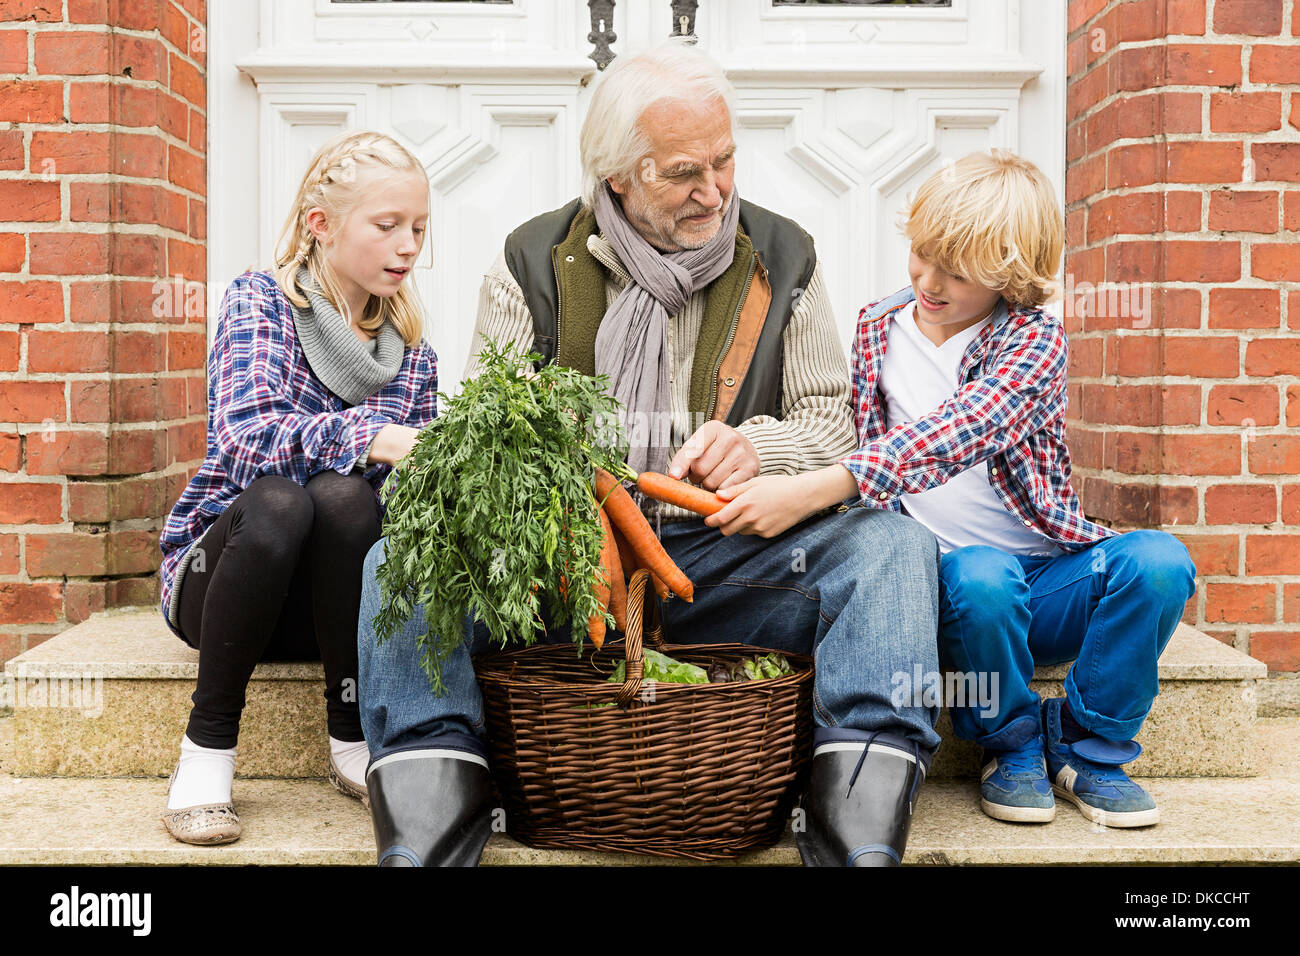 Grandfather sitting with grandchildren on doorstep with carrots - Stock Image